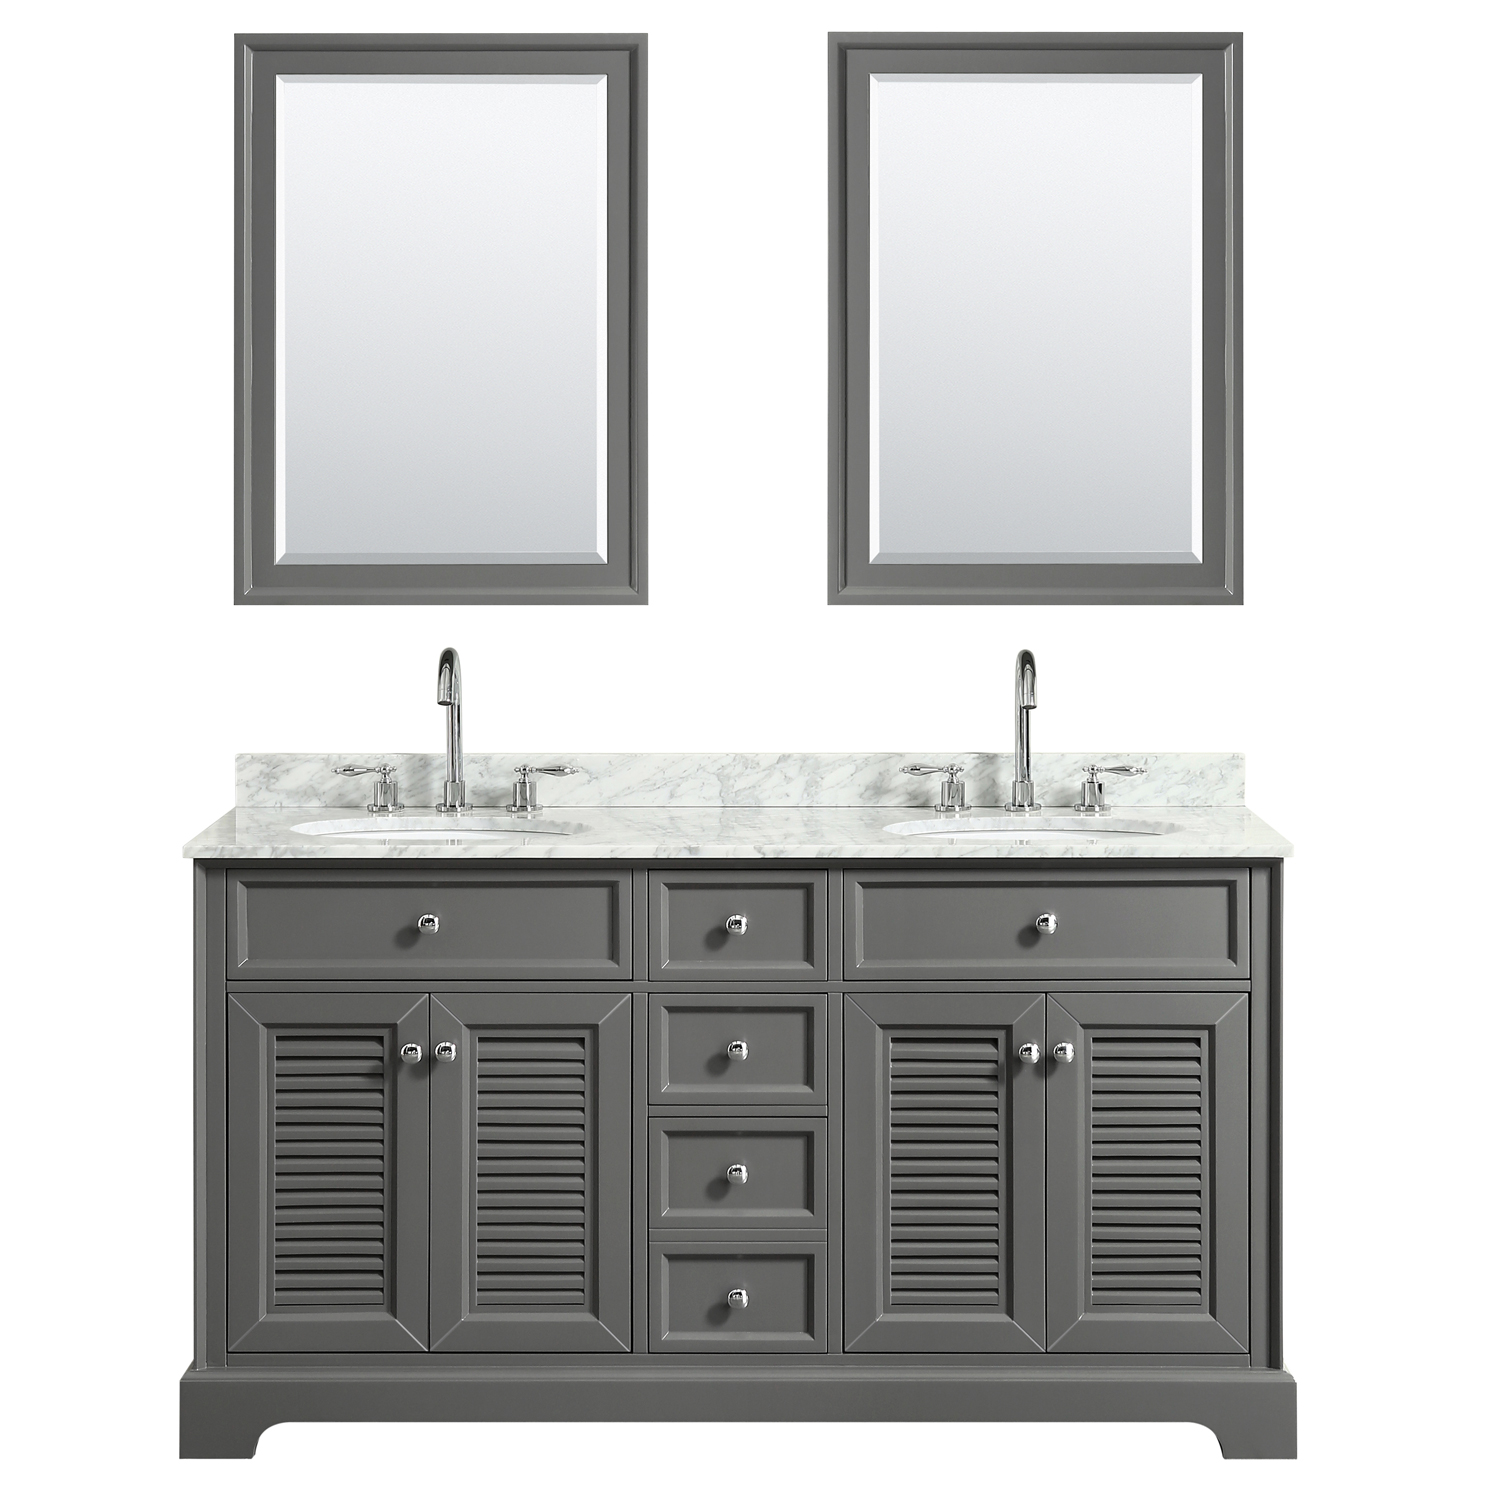 "60"" Double Bathroom Vanity in White Carrara Marble Countertop with Undermount Sinks, Medicine Cabinet, Mirror and Color Options"